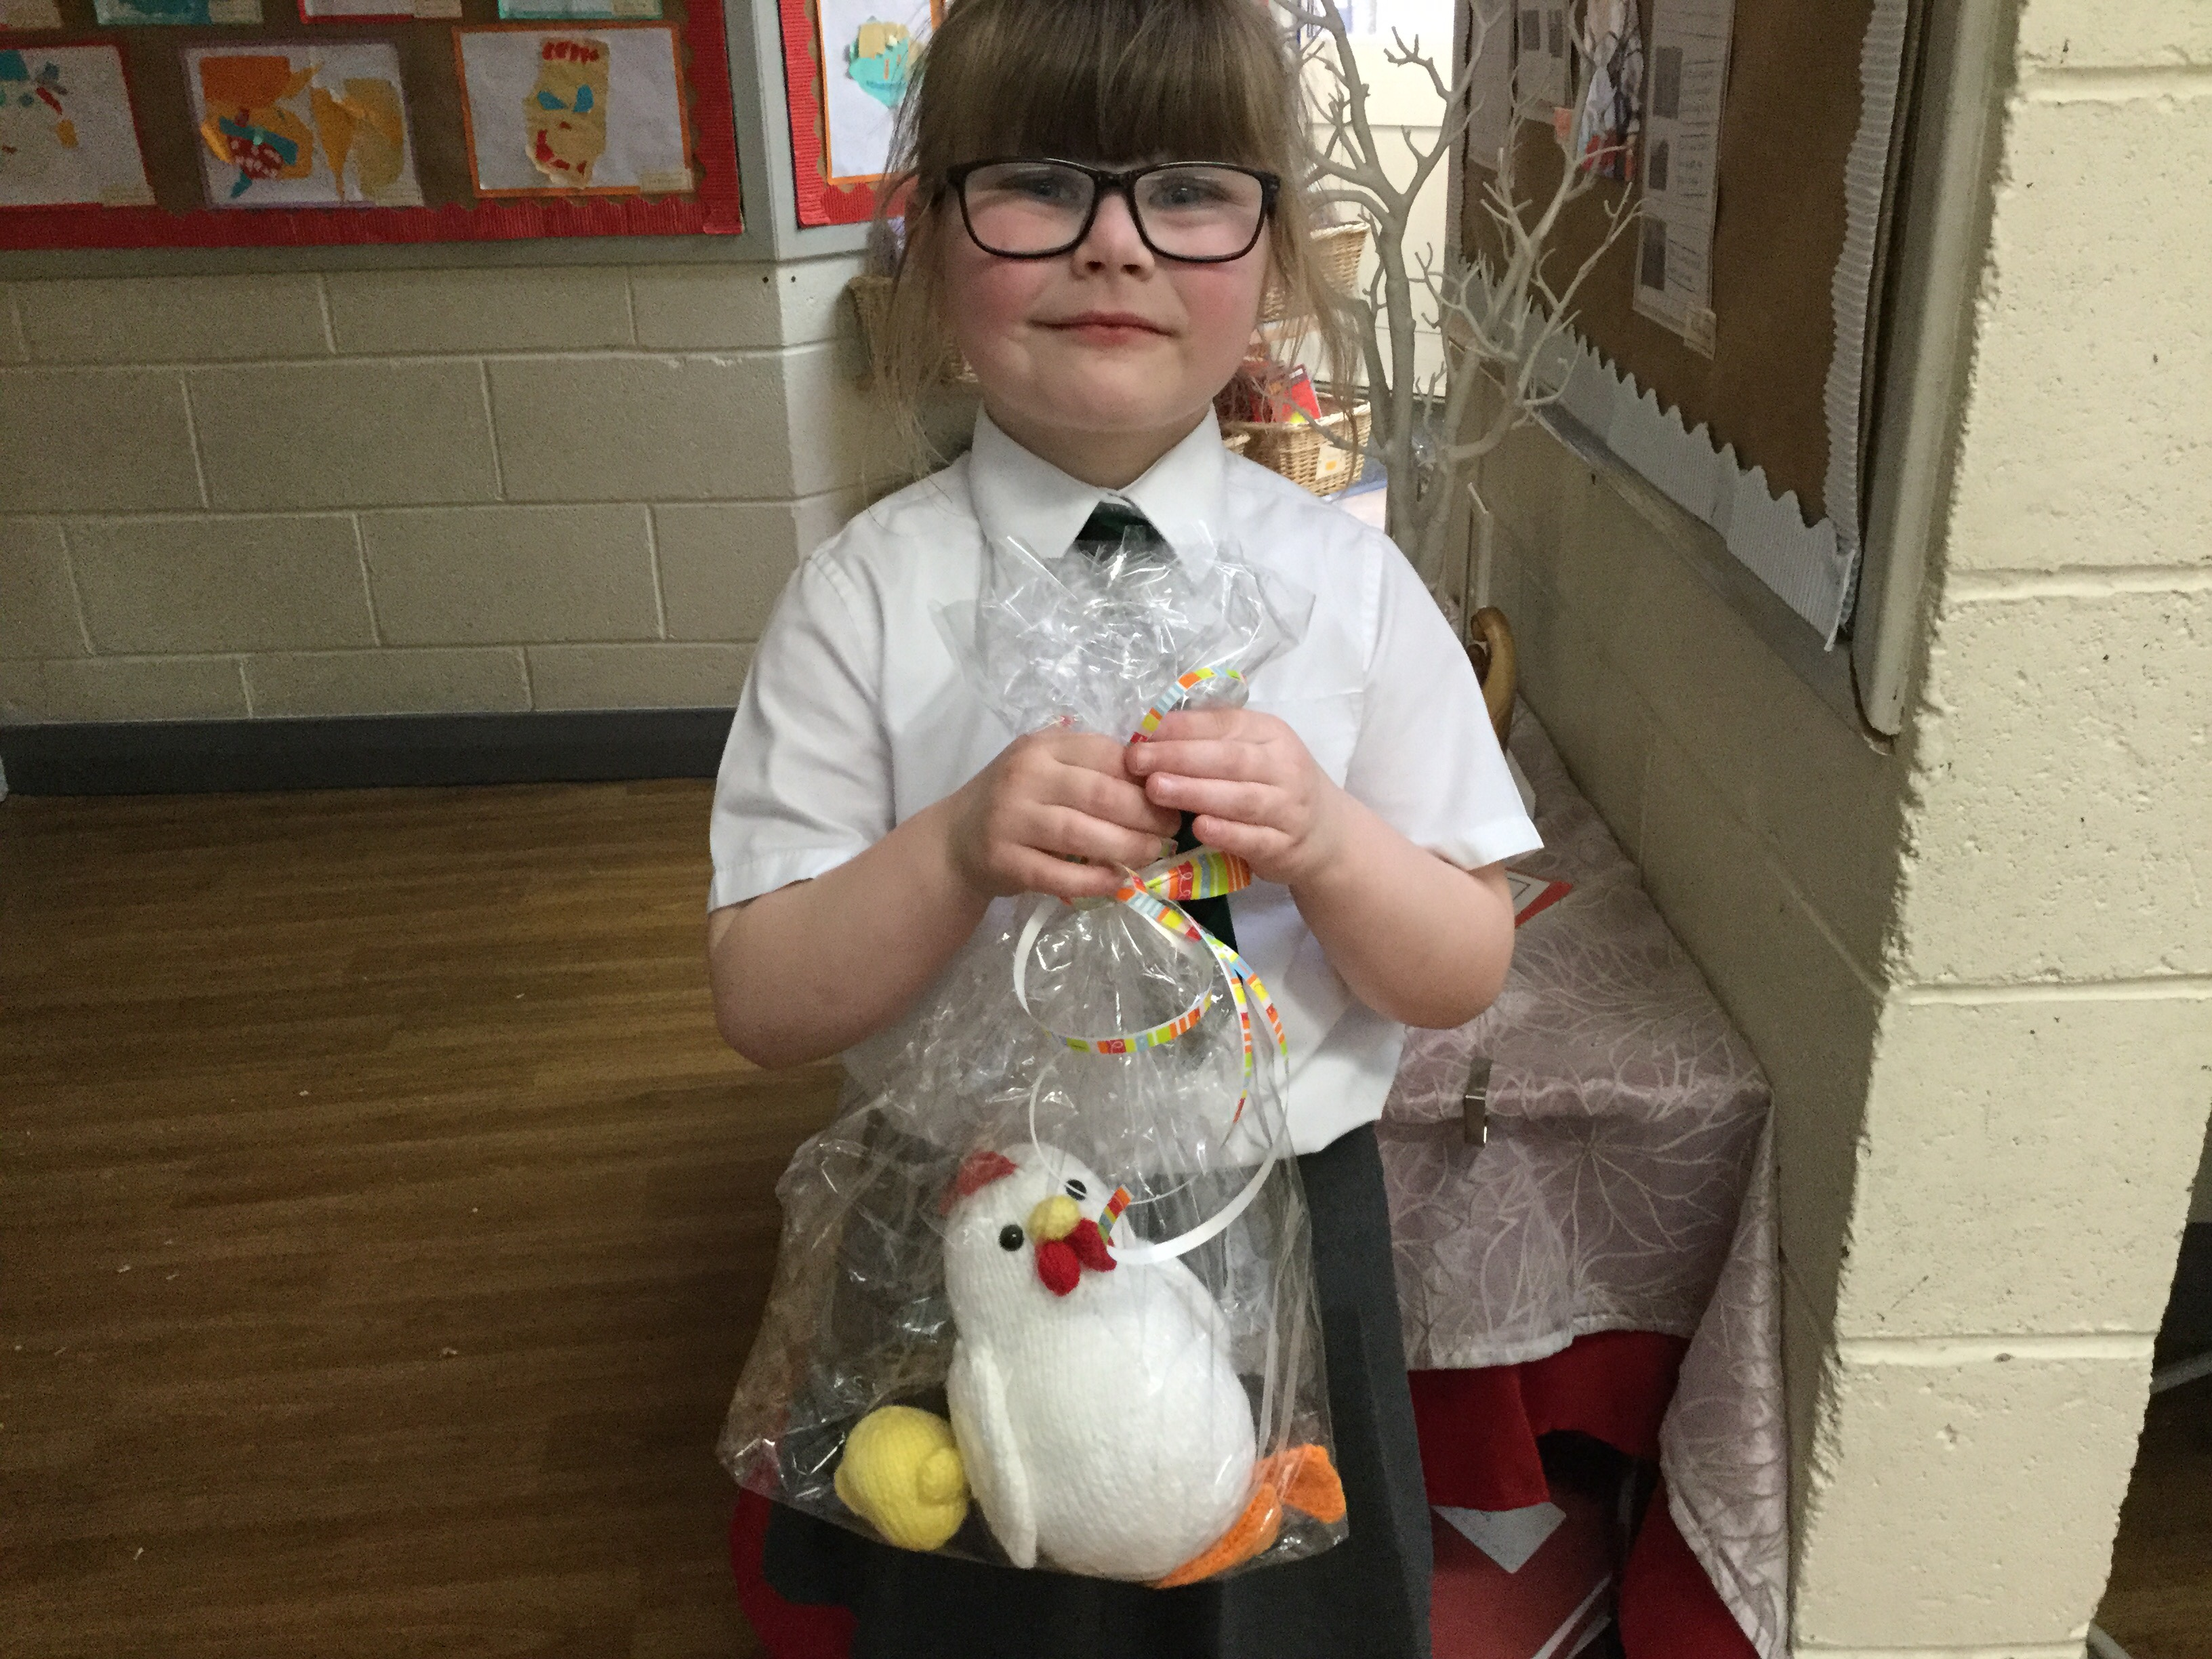 Y1 Guess the name of the chick winner…Ginger. Raised £90